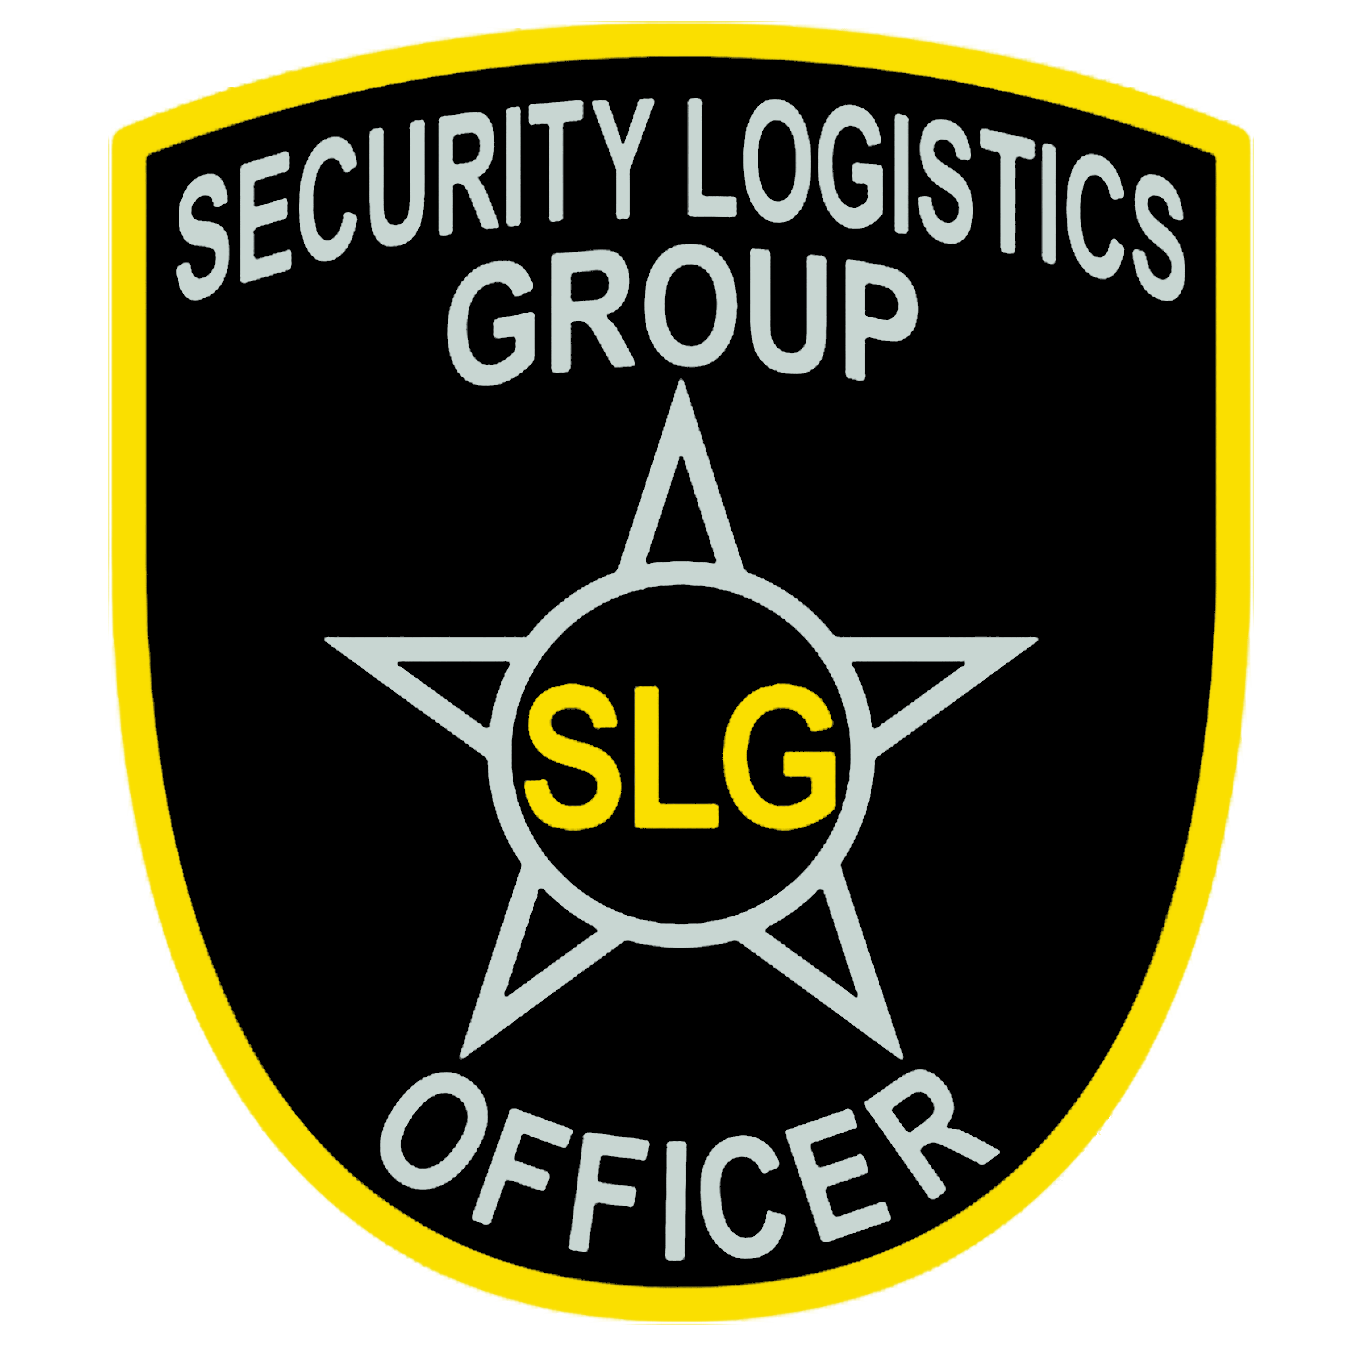 Security Logistics Group